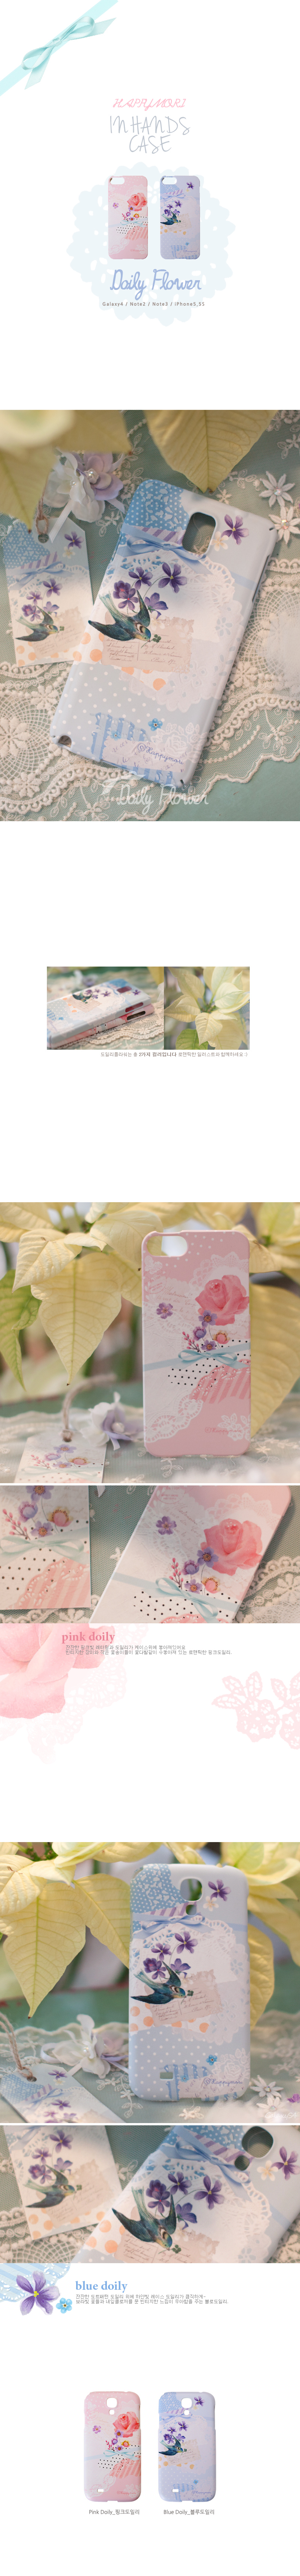 [HAPPYMORI] Hard Case_Doily Flower 2color (iPhone6Plus,Galaxy Note2,Galaxy Note3,Galaxy Note4)